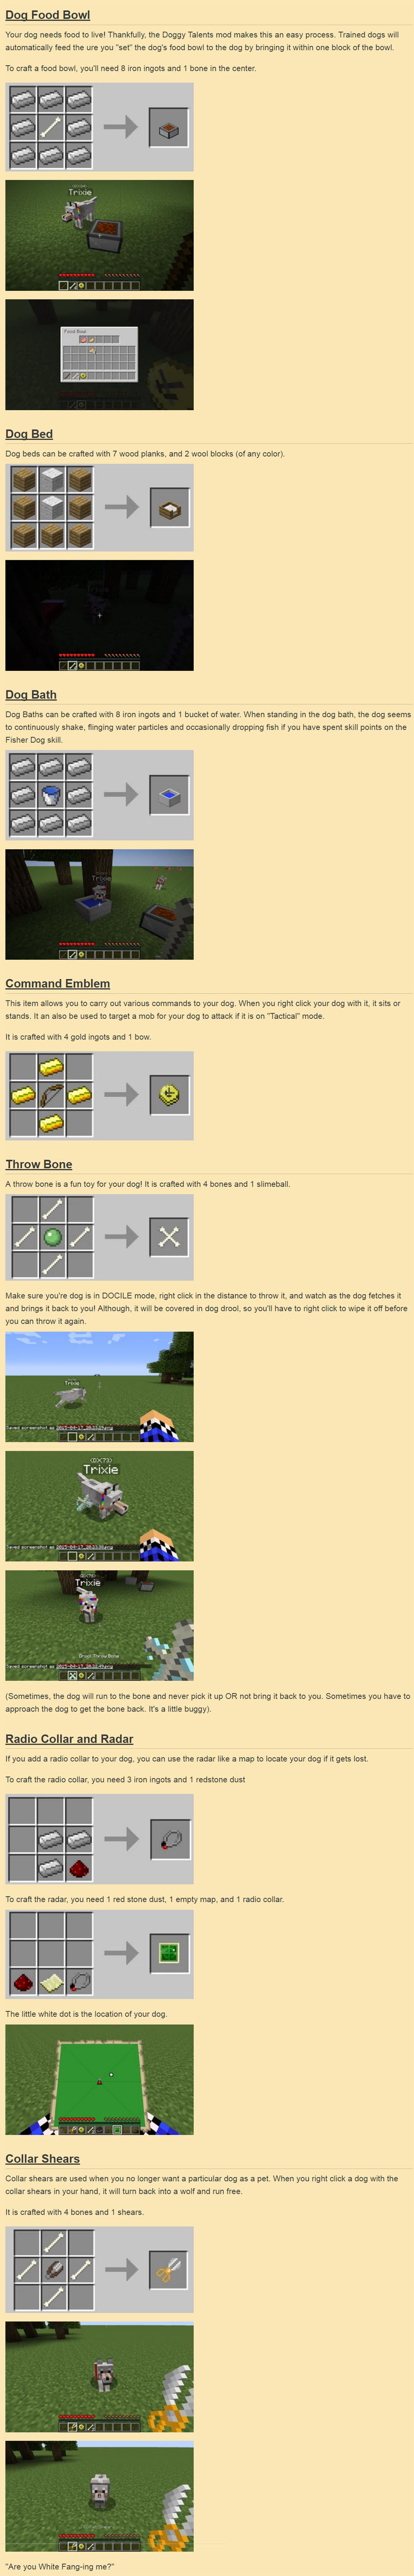 Doggy-Talents-Mod-Items-and-Equipment.jpg